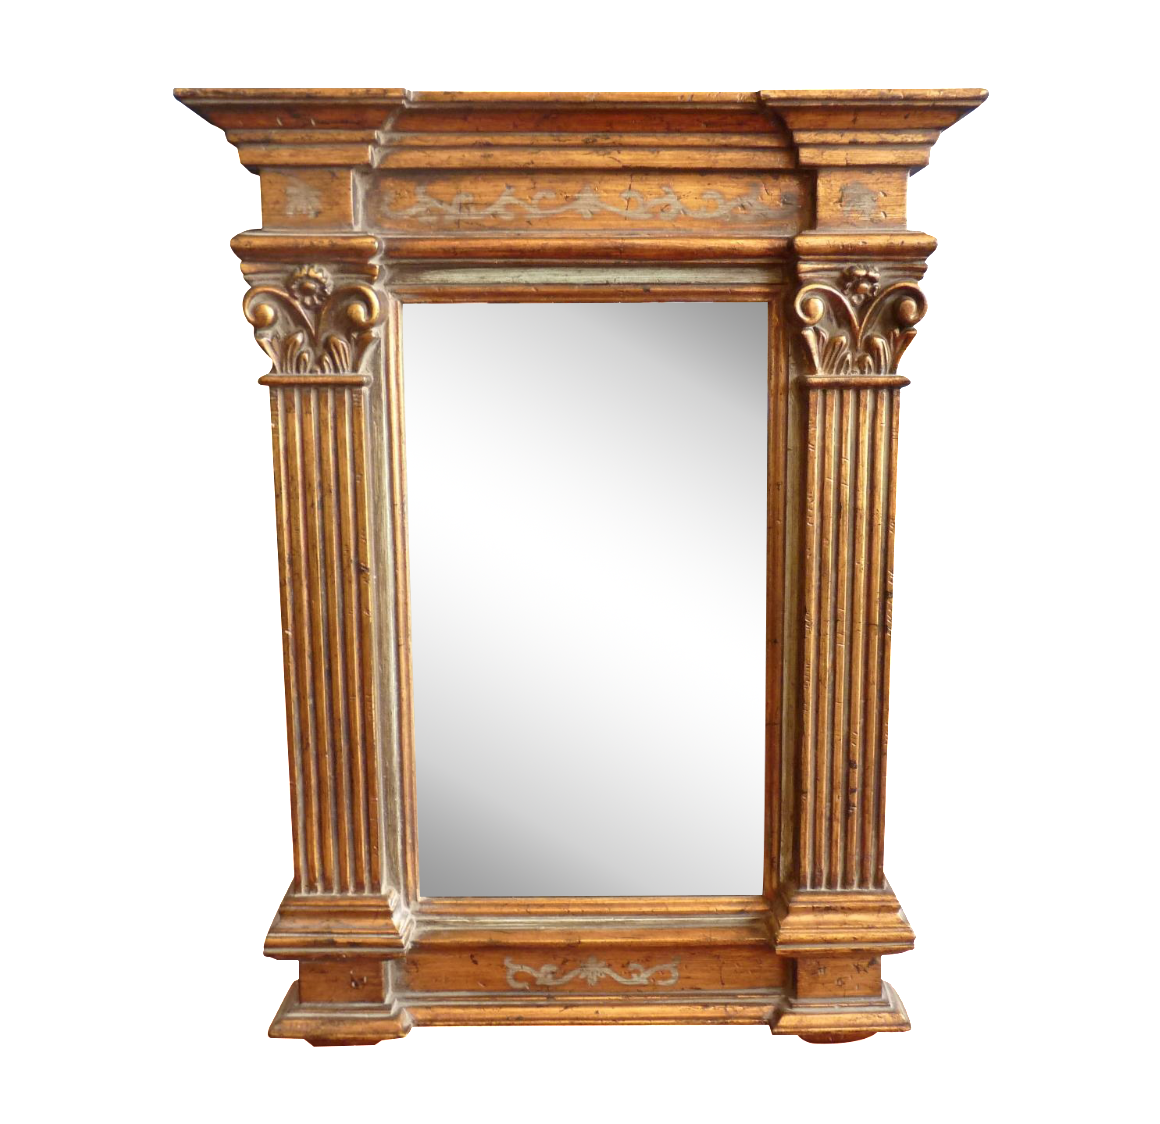 Wall Mirror With Mantle And Columns  Chairish. Patio Ideas For Backyard. Bedroom Chandeliers. Industrial Media Console. Pool Fence Ideas. Driveway Ideas. Queen Headboard. Painted Brick Exterior. Copper Cabinet Hardware